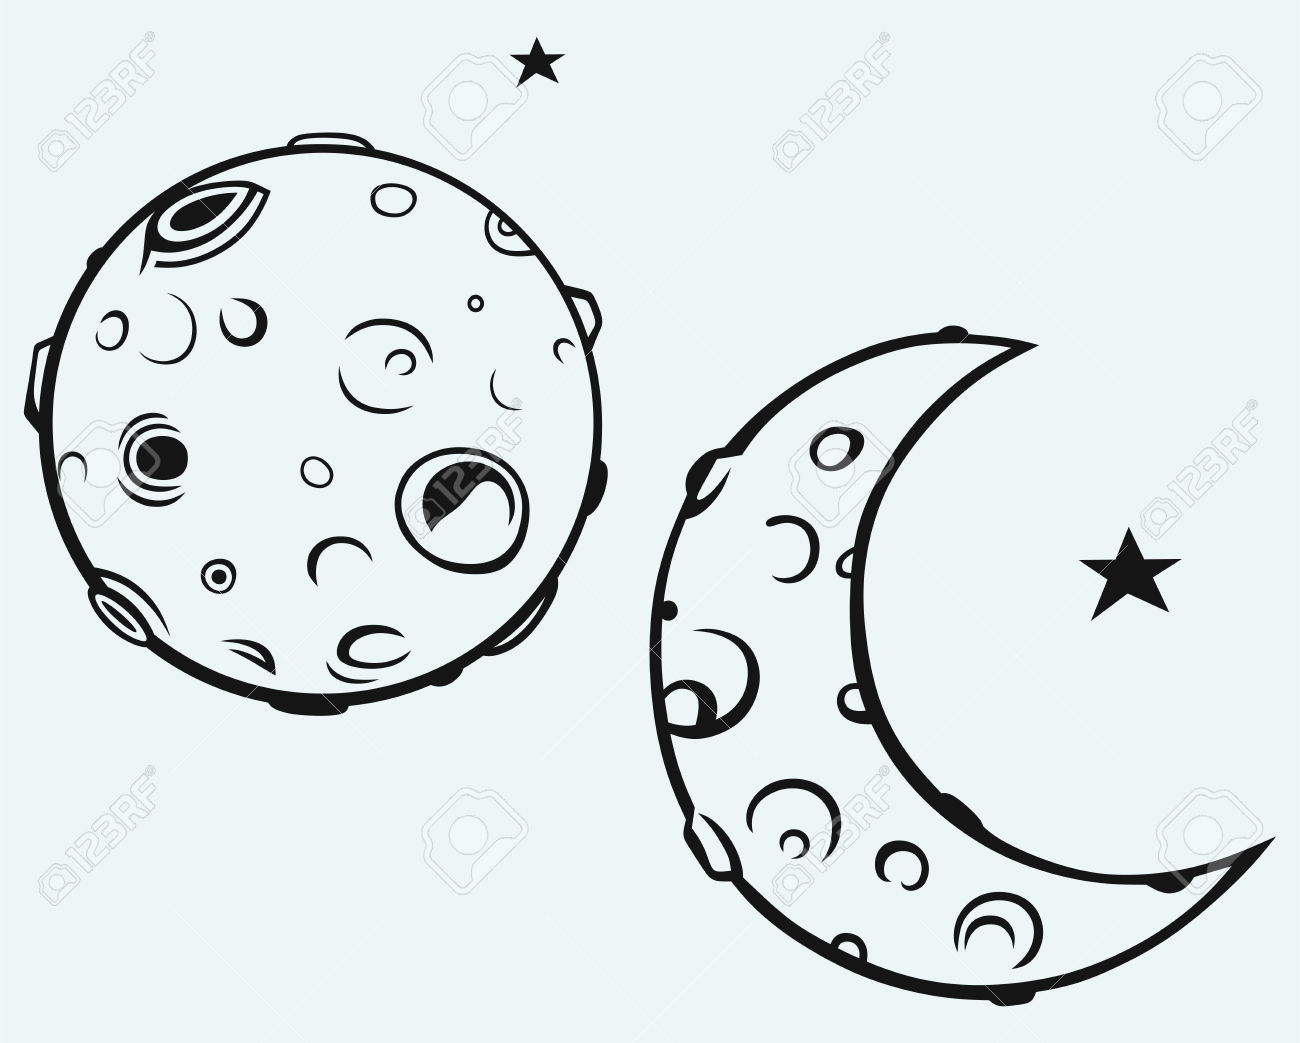 Moon And Lunar Craters Royalty Free Cliparts, Vectors, And Stock.